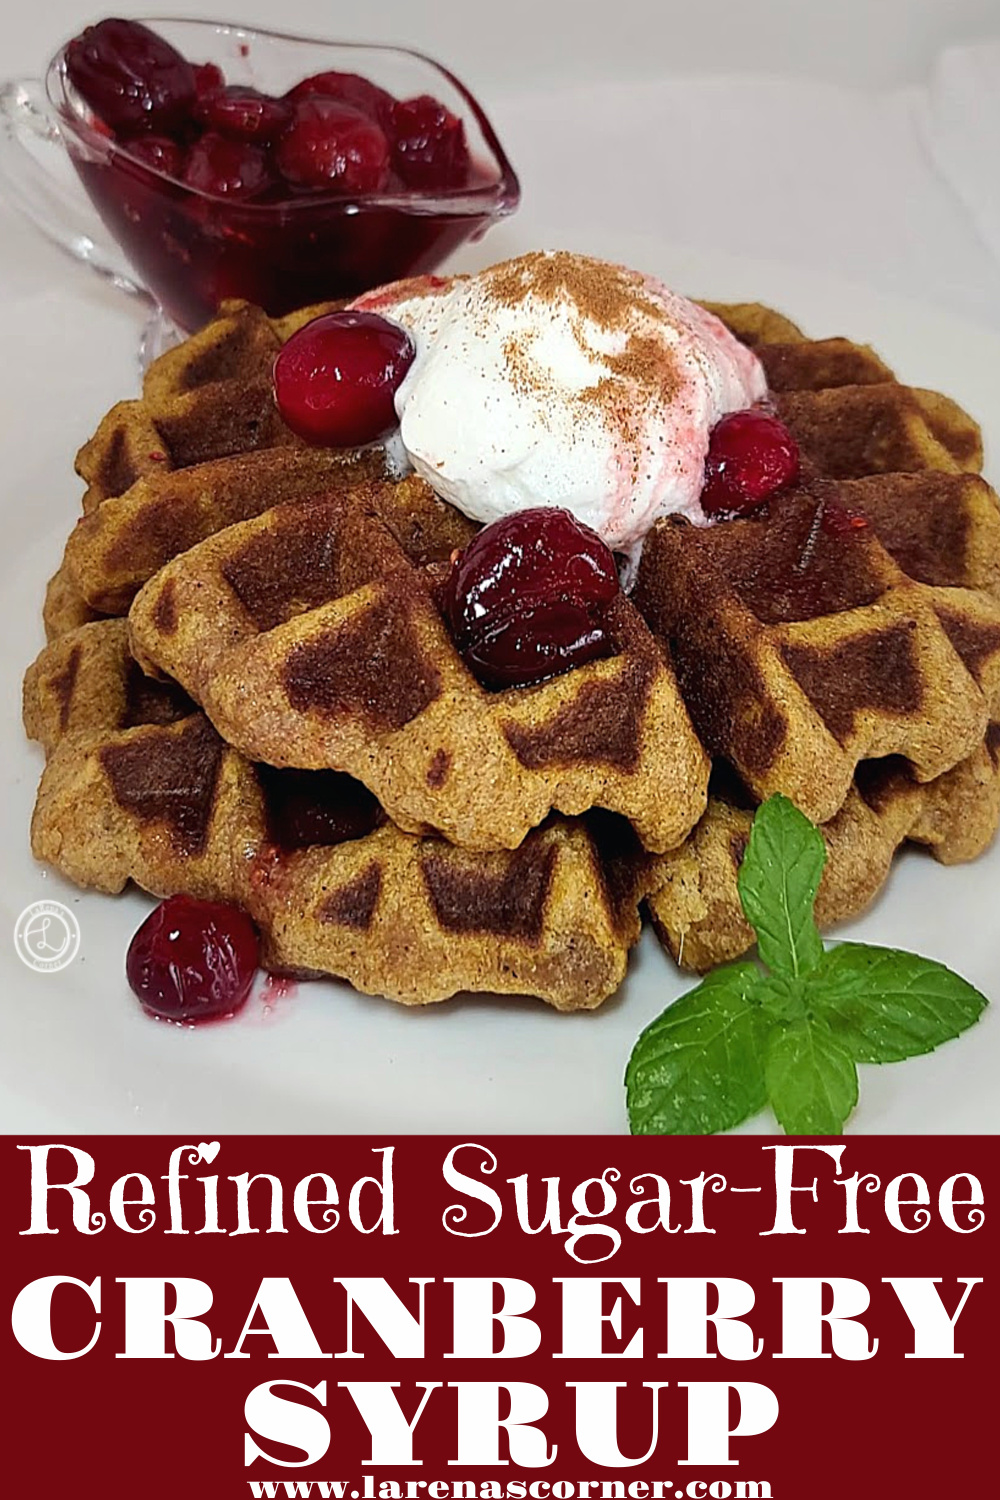 Cranberry Syrup on two pumpkin waffles with a small container of cranberry syrup